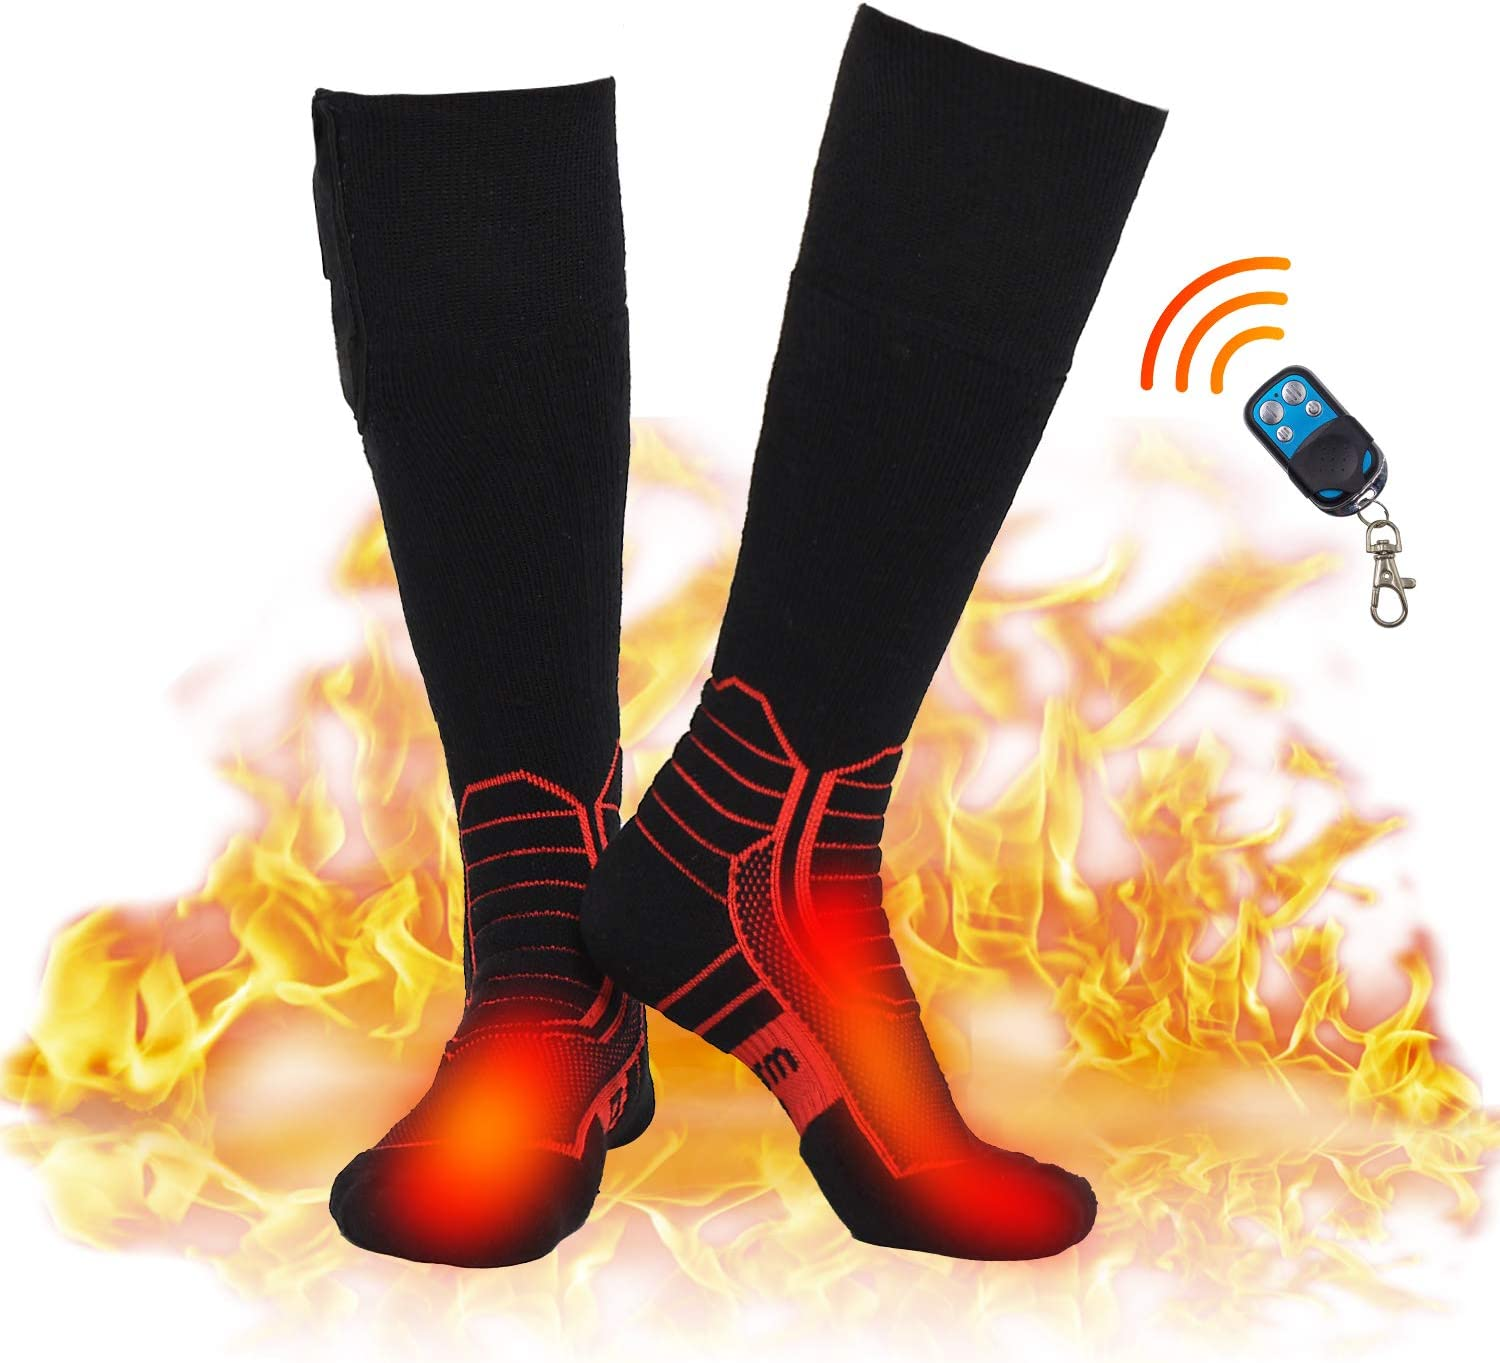 DR. WARM RECHARGEABLE BATTERY HEATED SOCKS WITH REMOTE